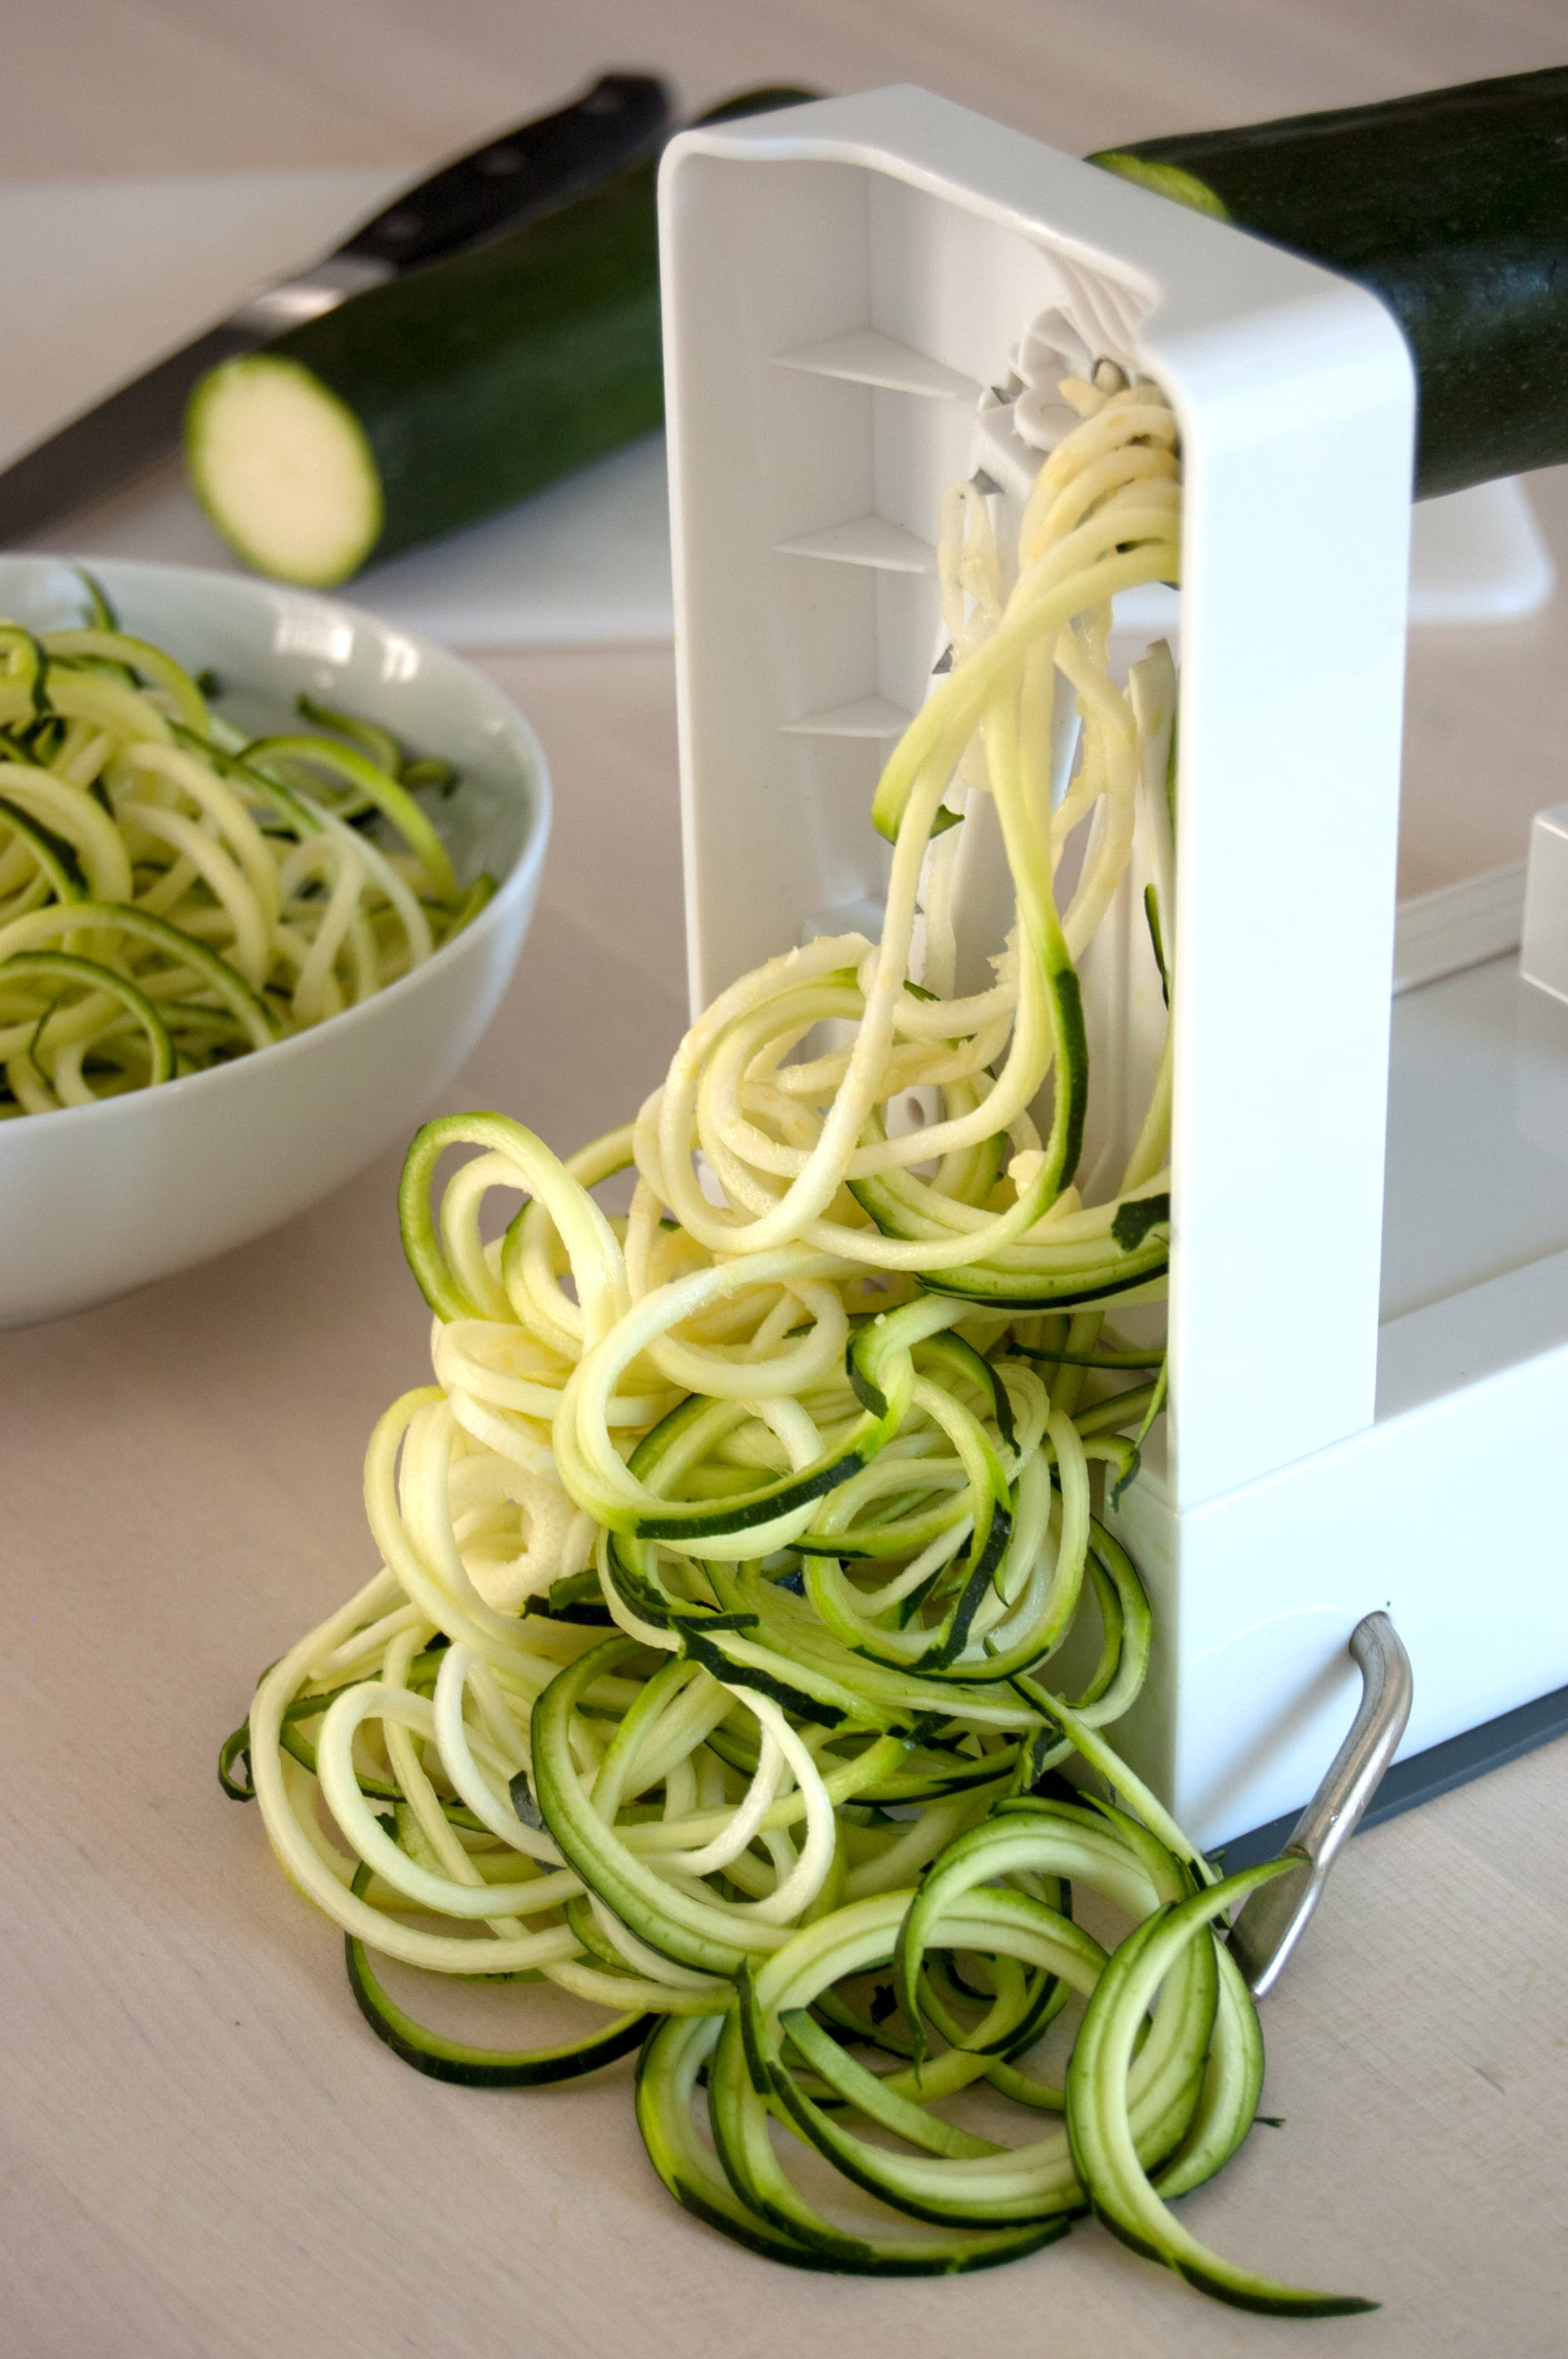 The Absolute Best Way to Cook Zucchini Noodles